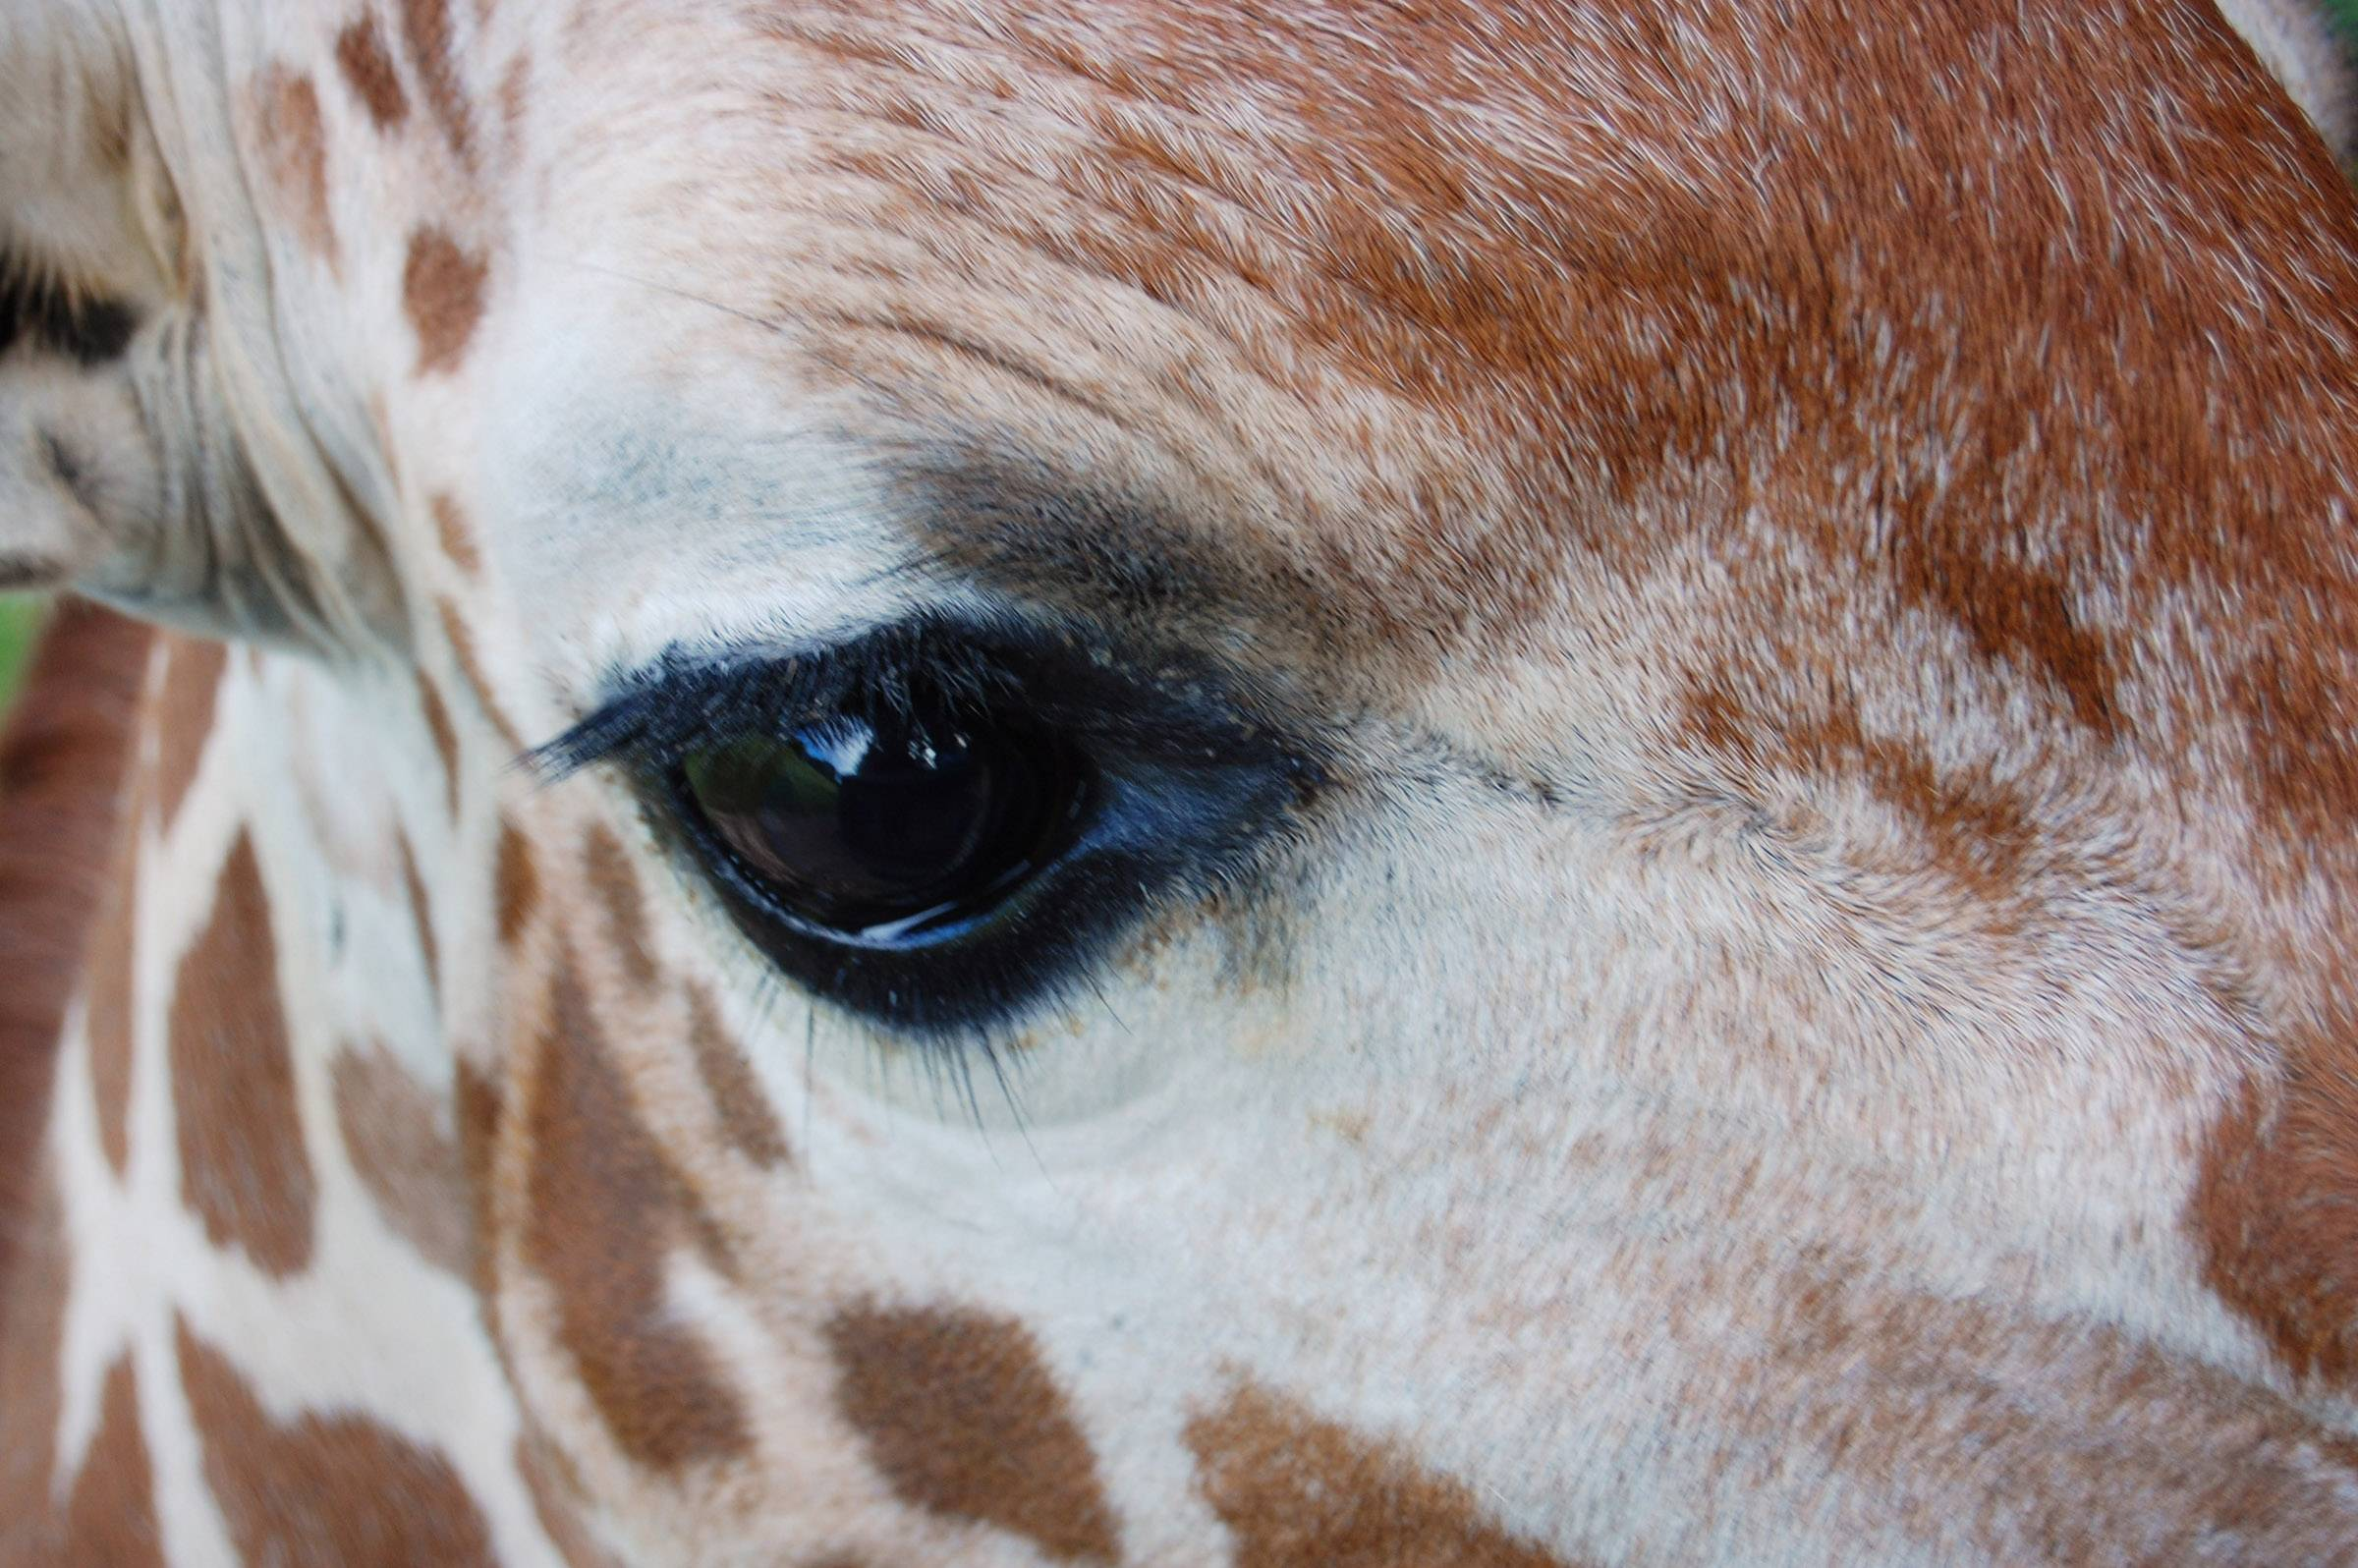 A giraffe stares out at the Binder Zoo in Battle Creek, Michigan last July 3.